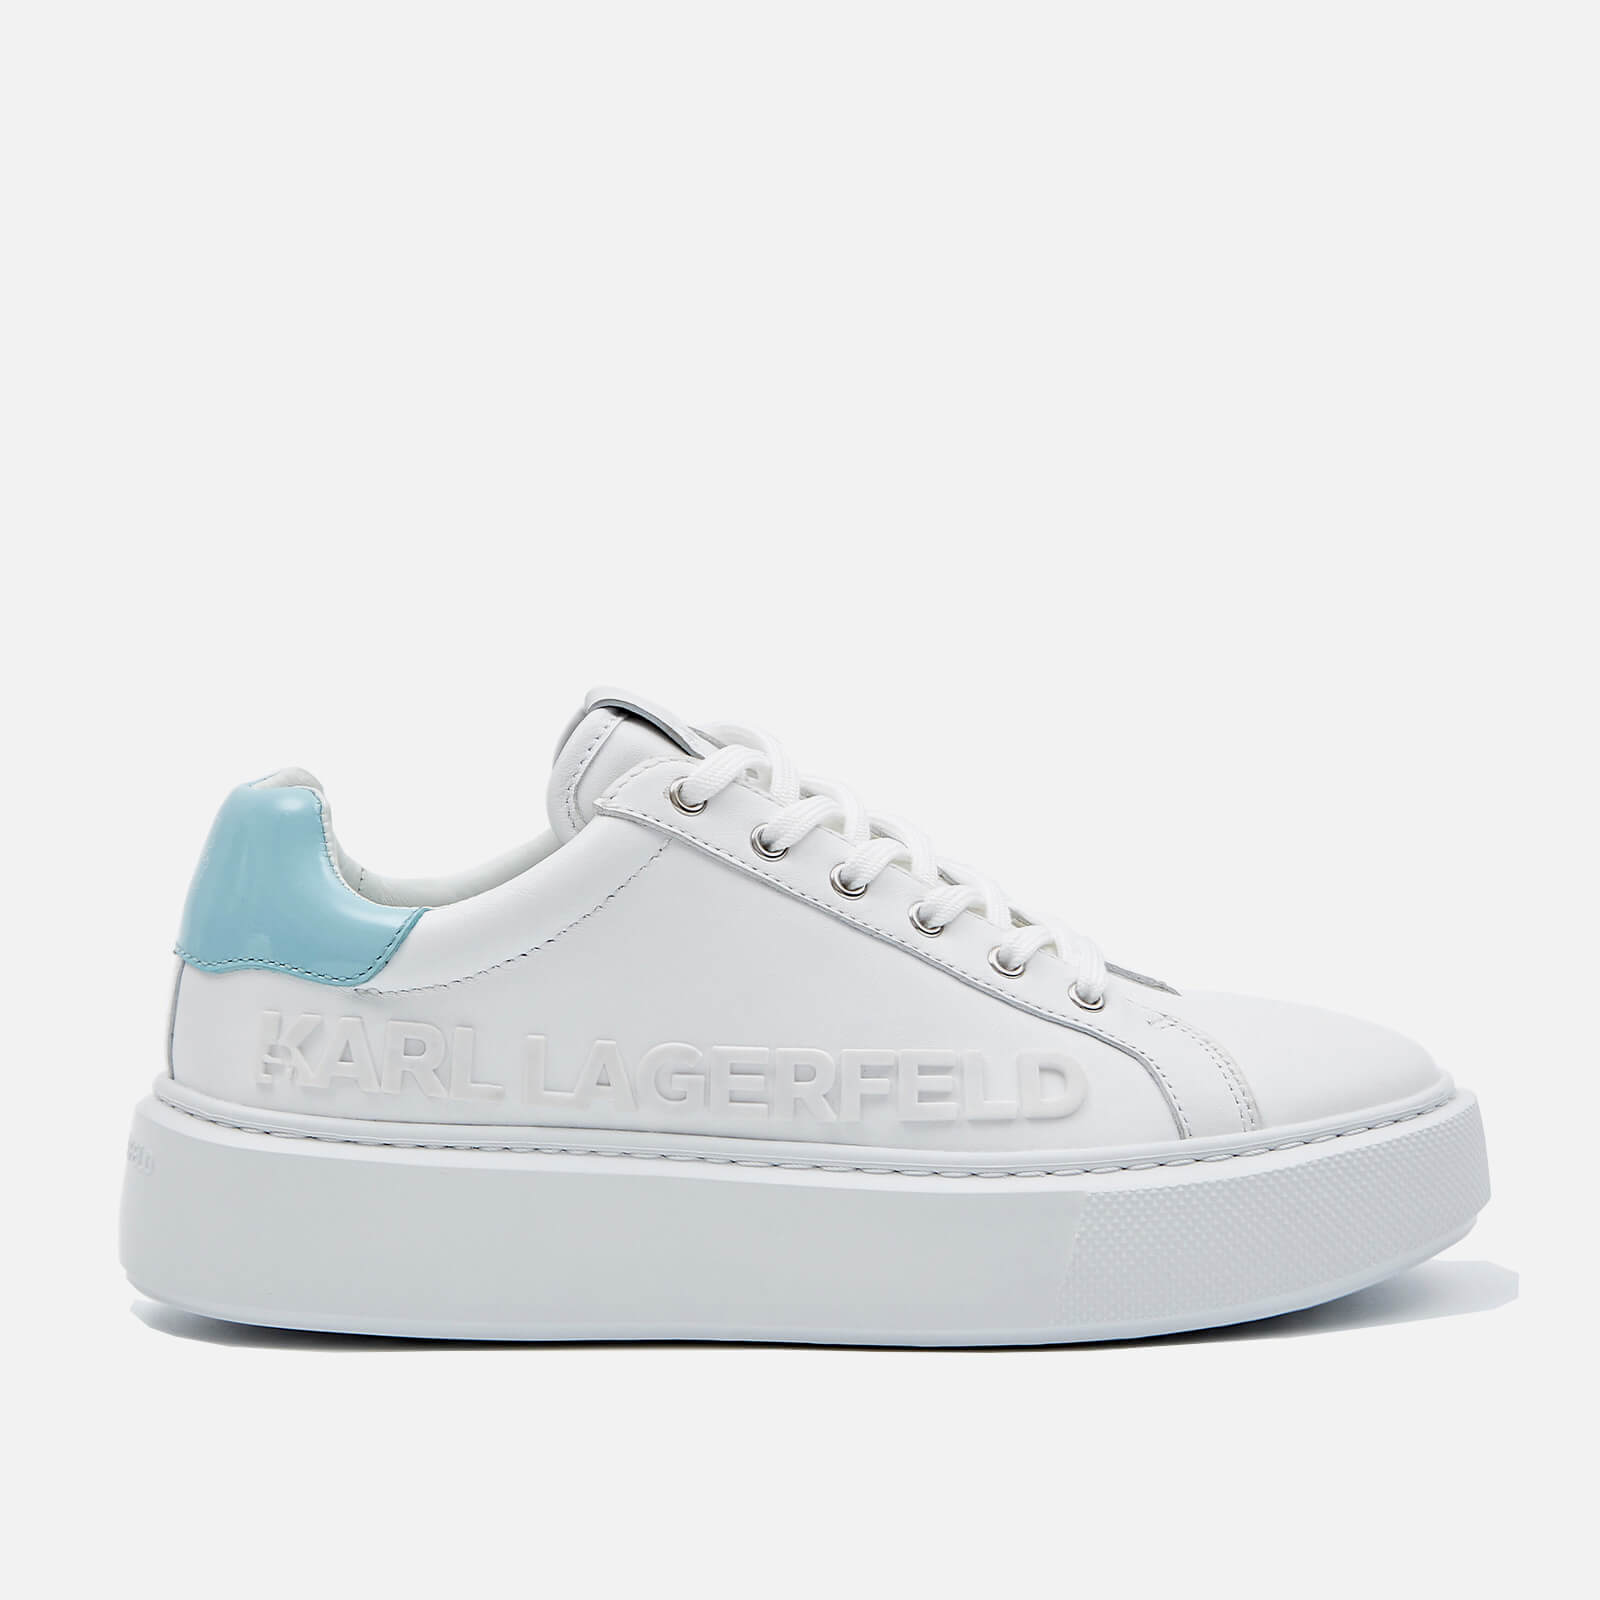 Karl Lagerfeld Womens Maxi Kup Leather Flatform Trainers White Blue Uk 3